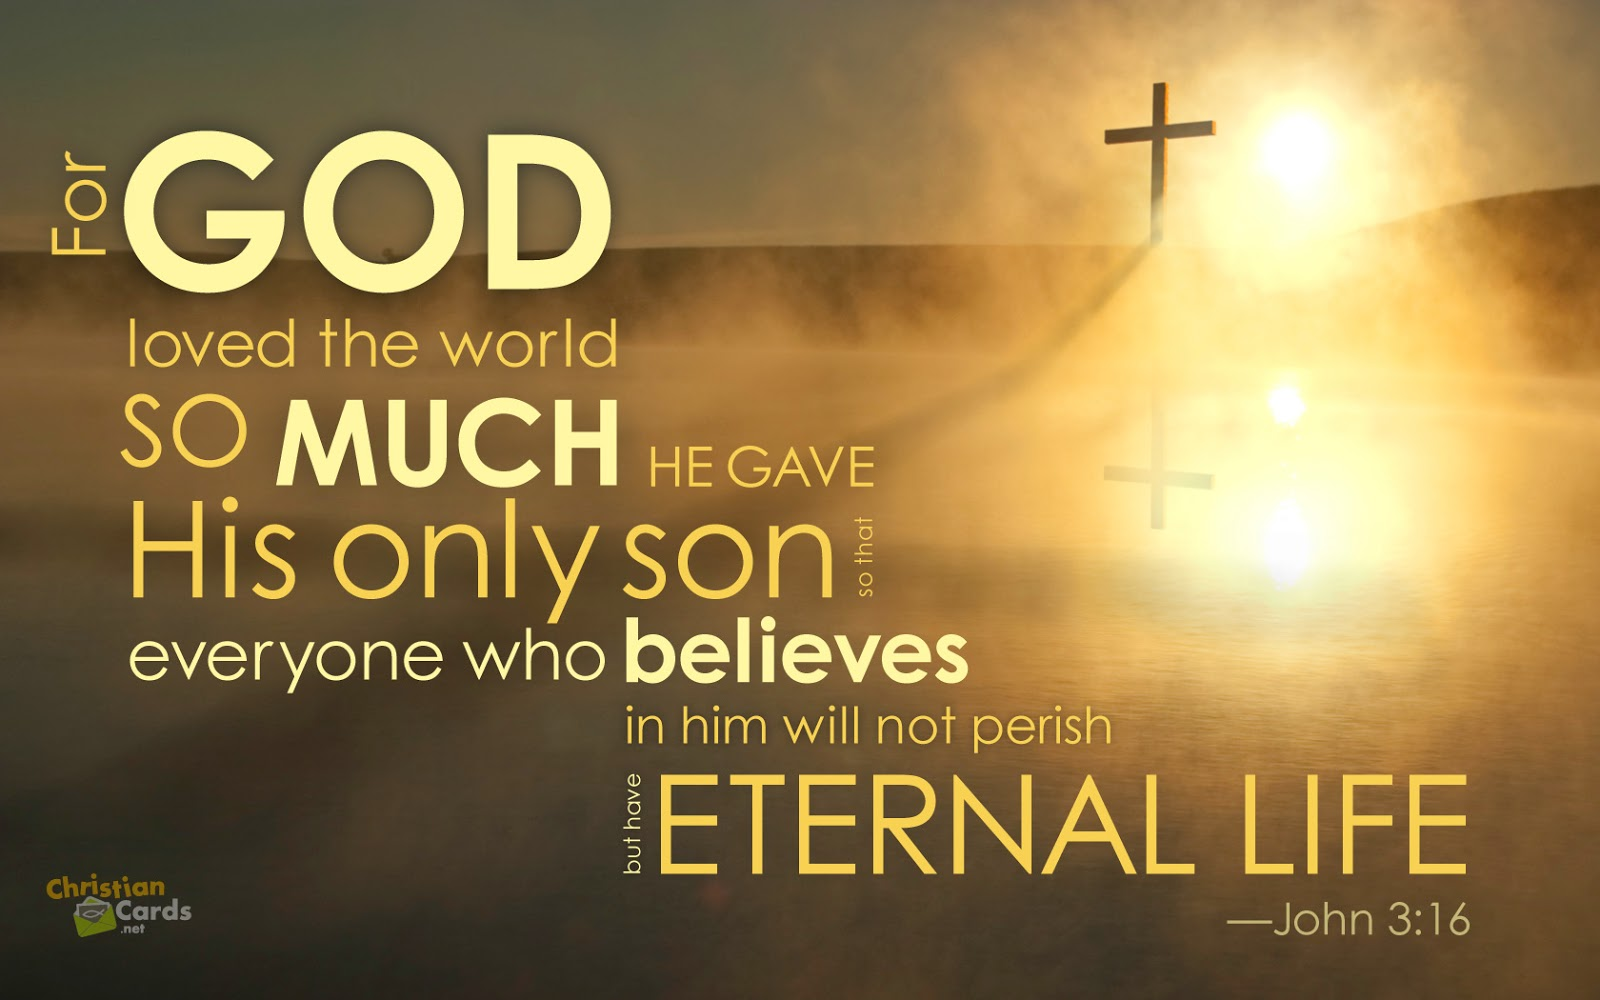 Quotes Republic: Eternal life